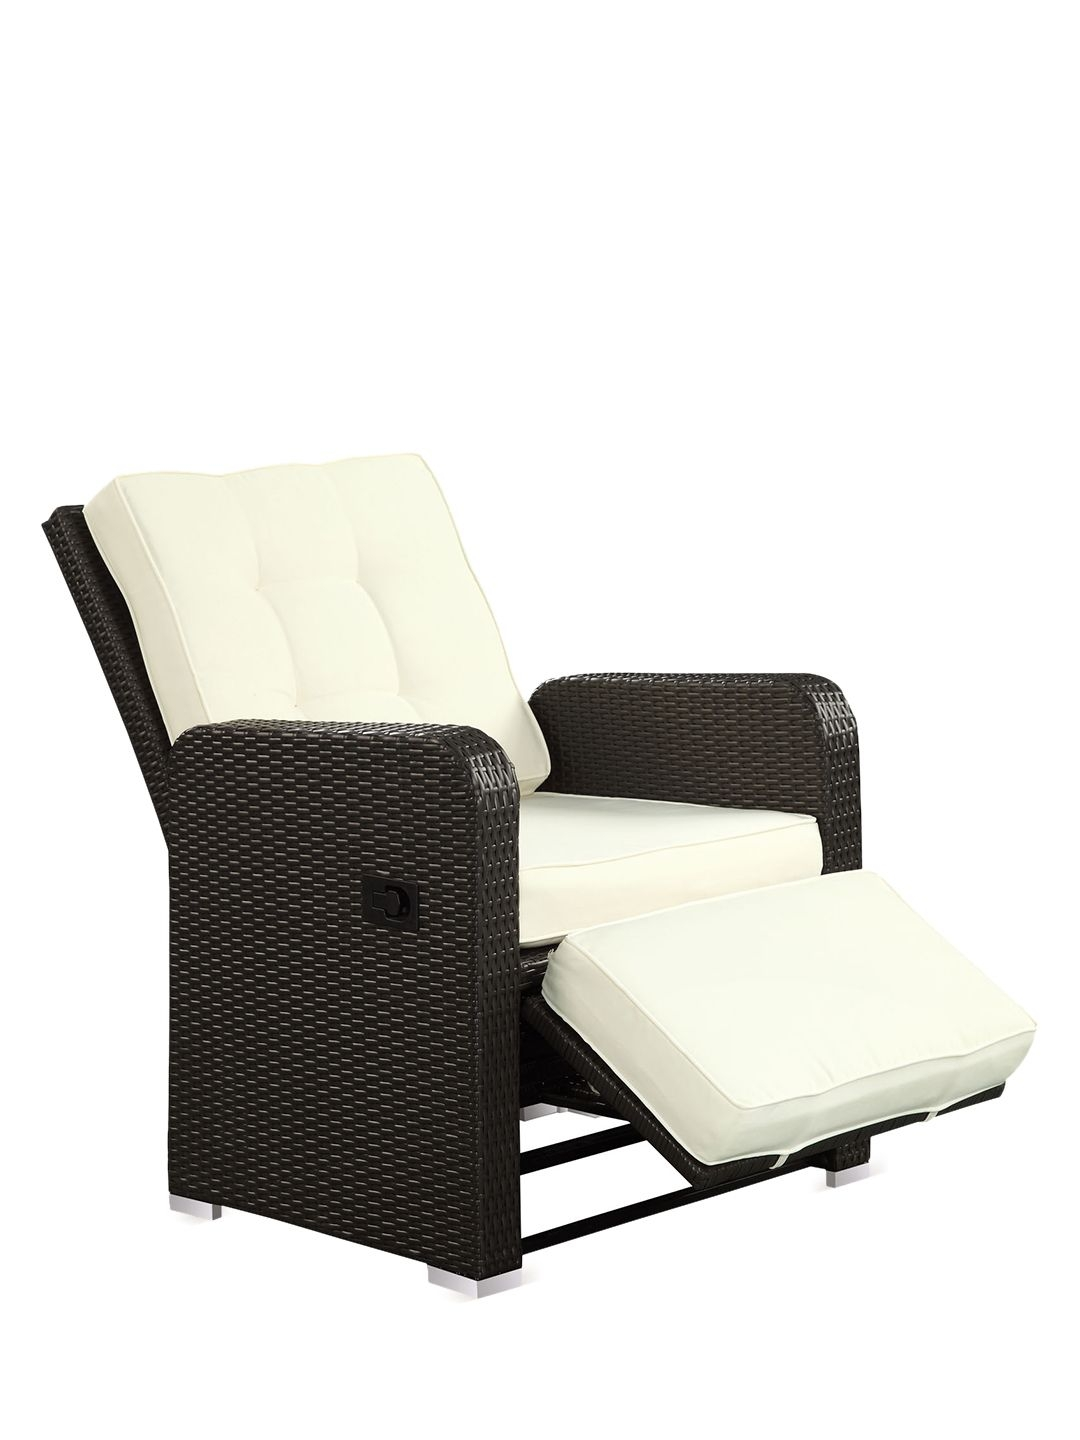 Superbe Wicker Outdoor Patio Recliner